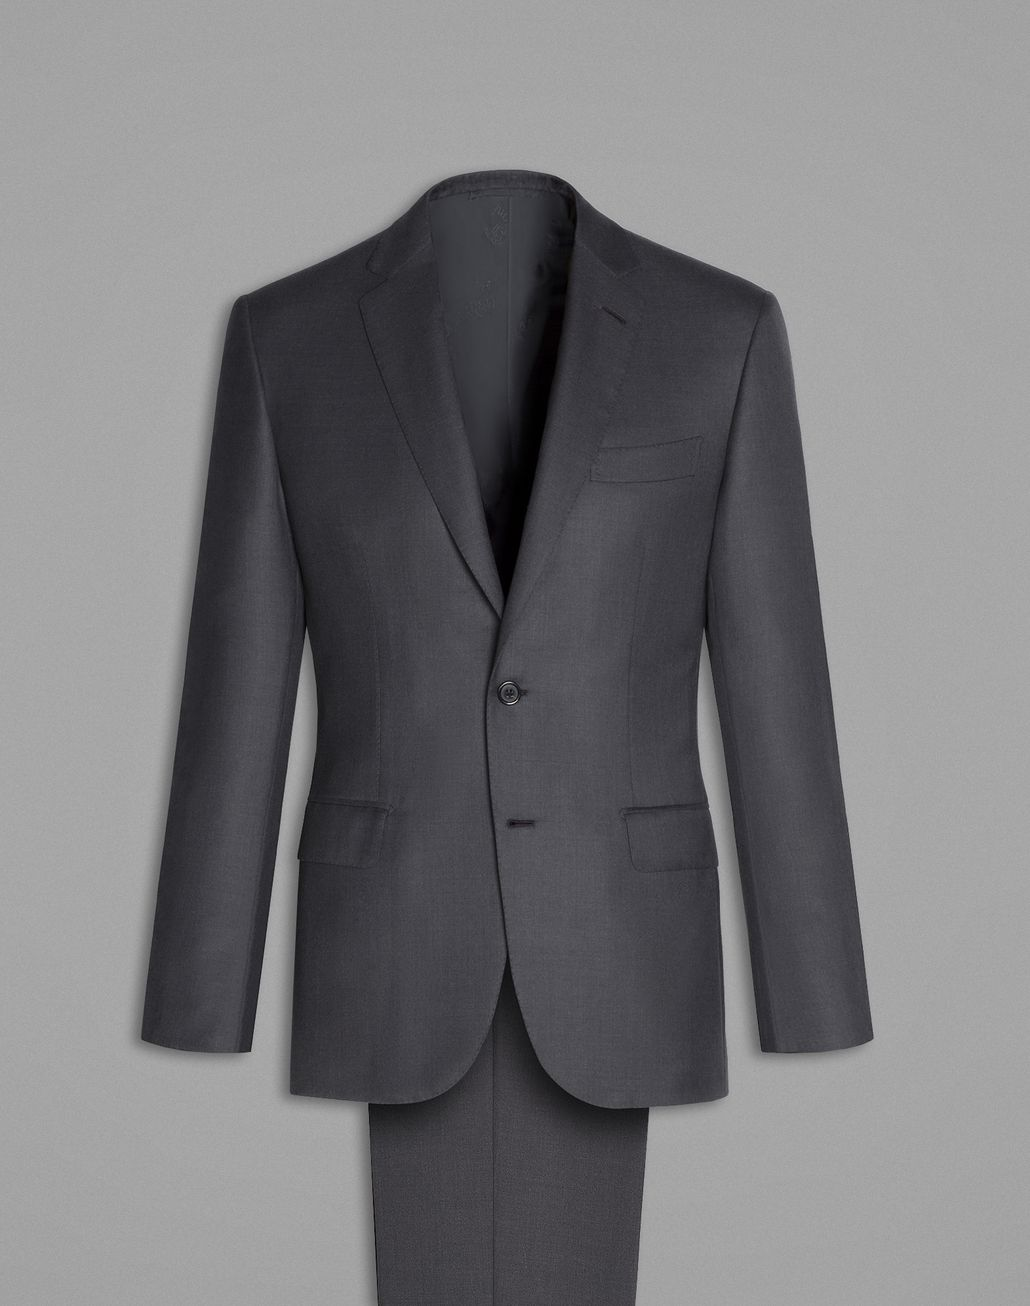 BRIONI Charcoal Madison Suit Suits & Jackets Man f